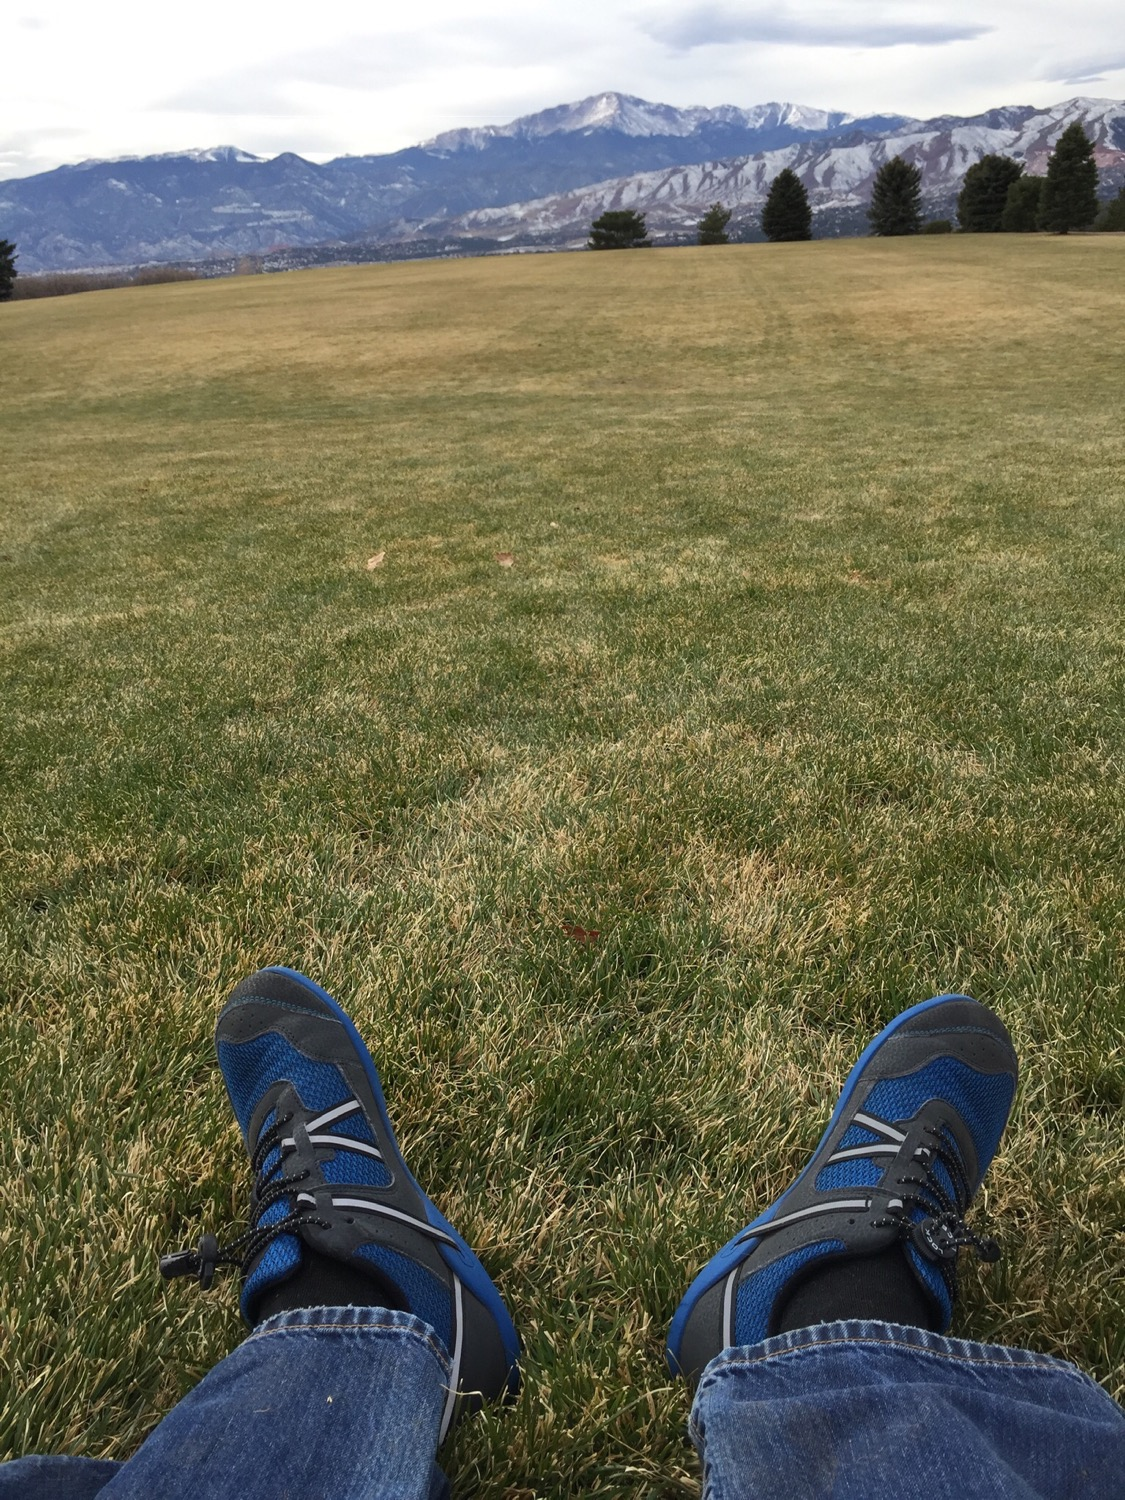 2f832bef4b I purchased my blue Prio xero shoes in store before Thanksgiving last month  and have hardly taken them off! I run 2.25 + every day in them and wear  them for ...